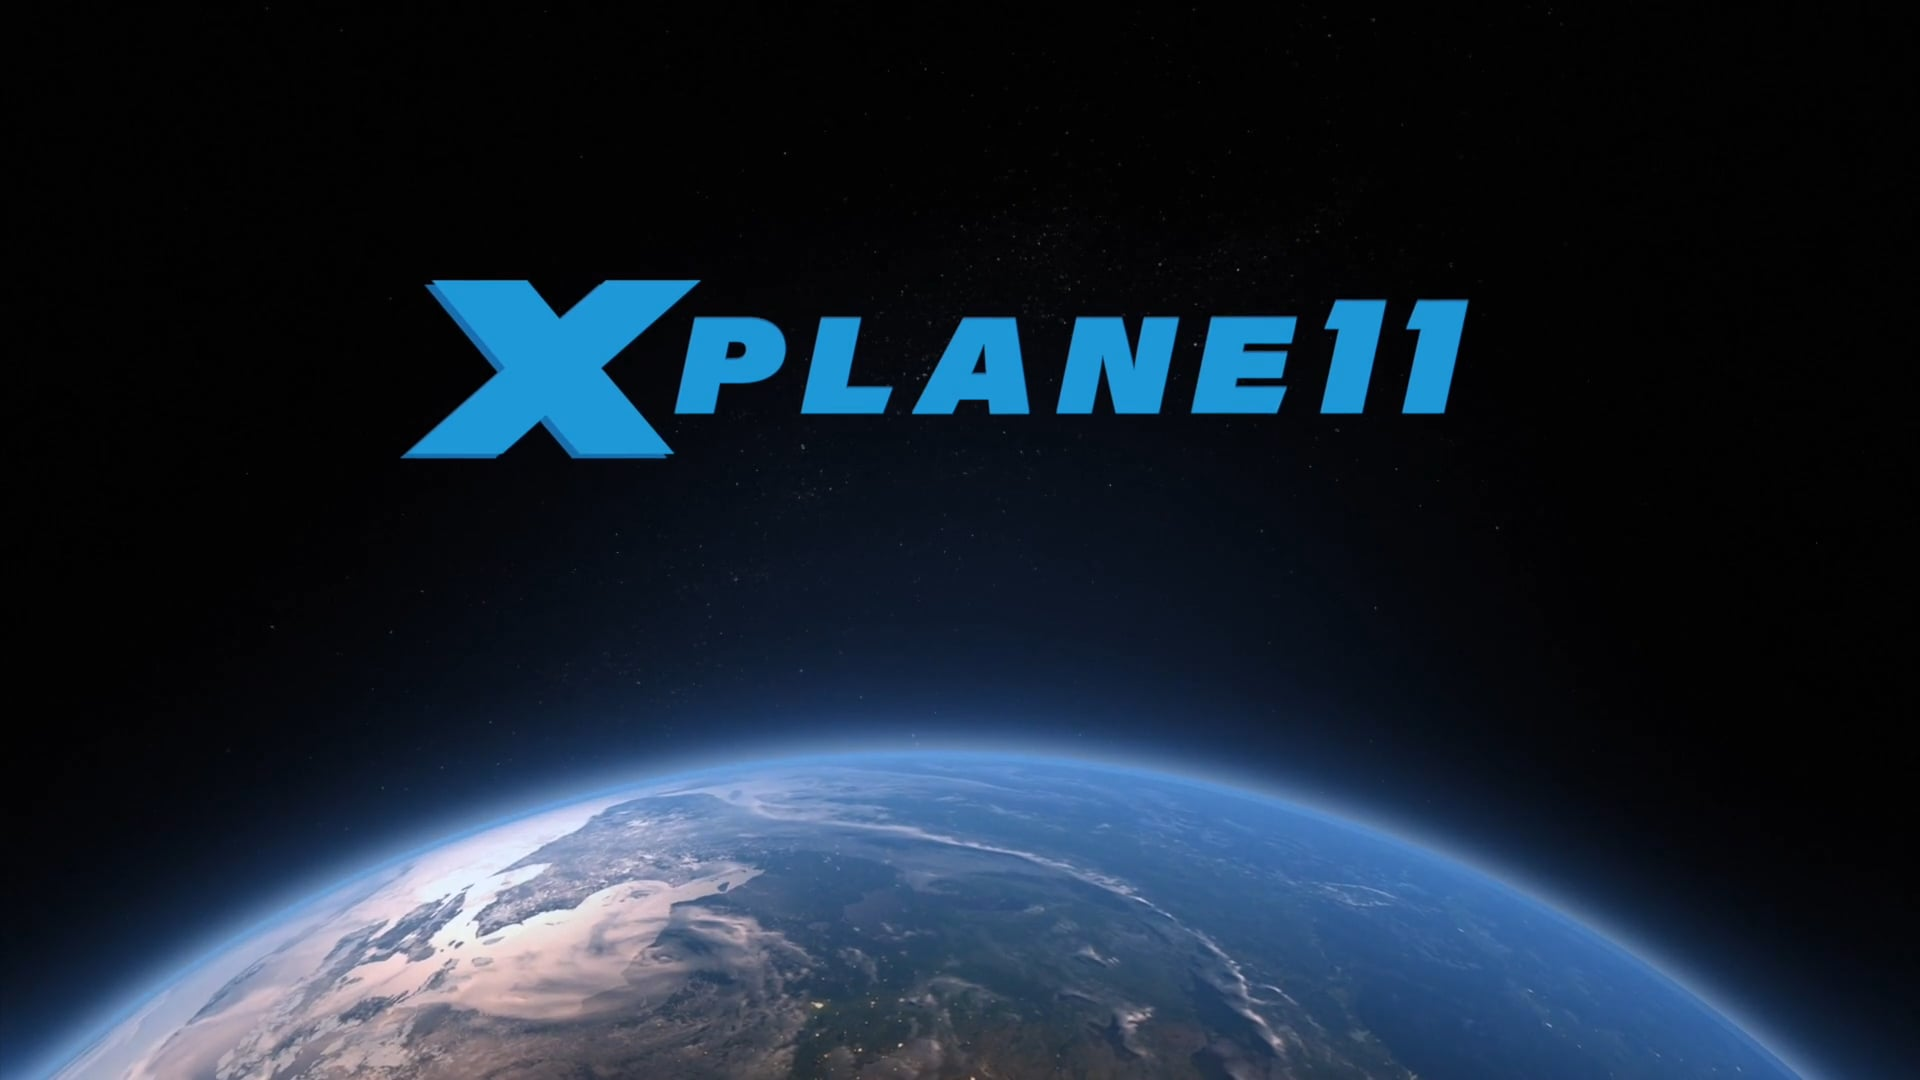 X-Plane 11 telecharger gratuit de PC et Torrent